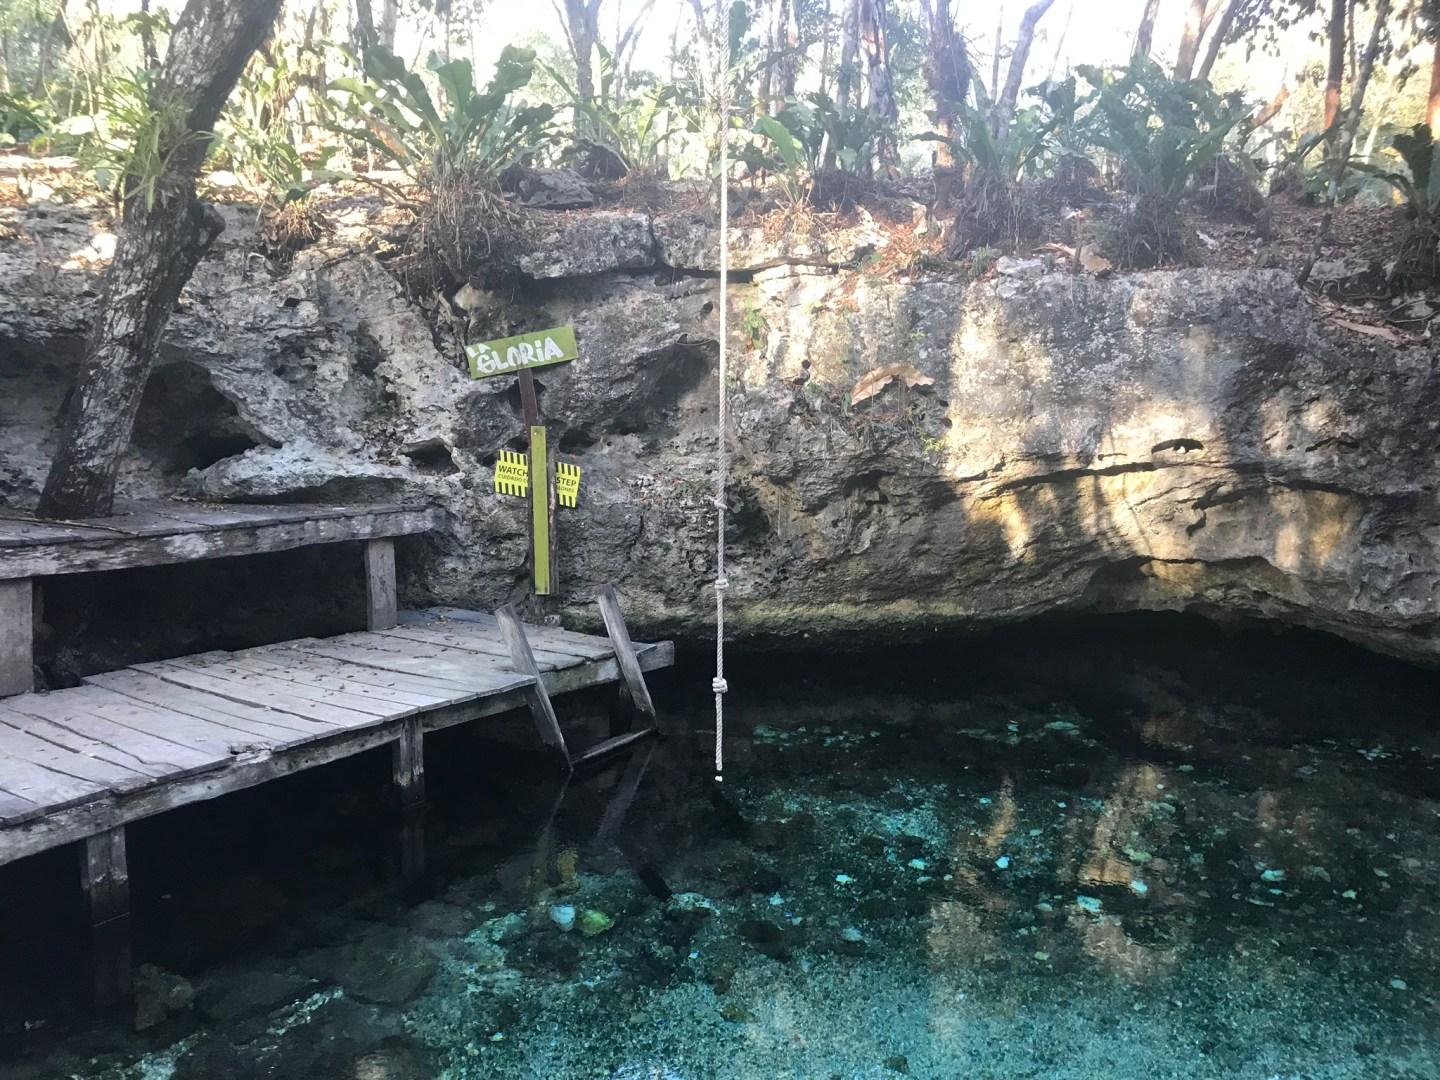 Rope swing at the cenote in Mexico